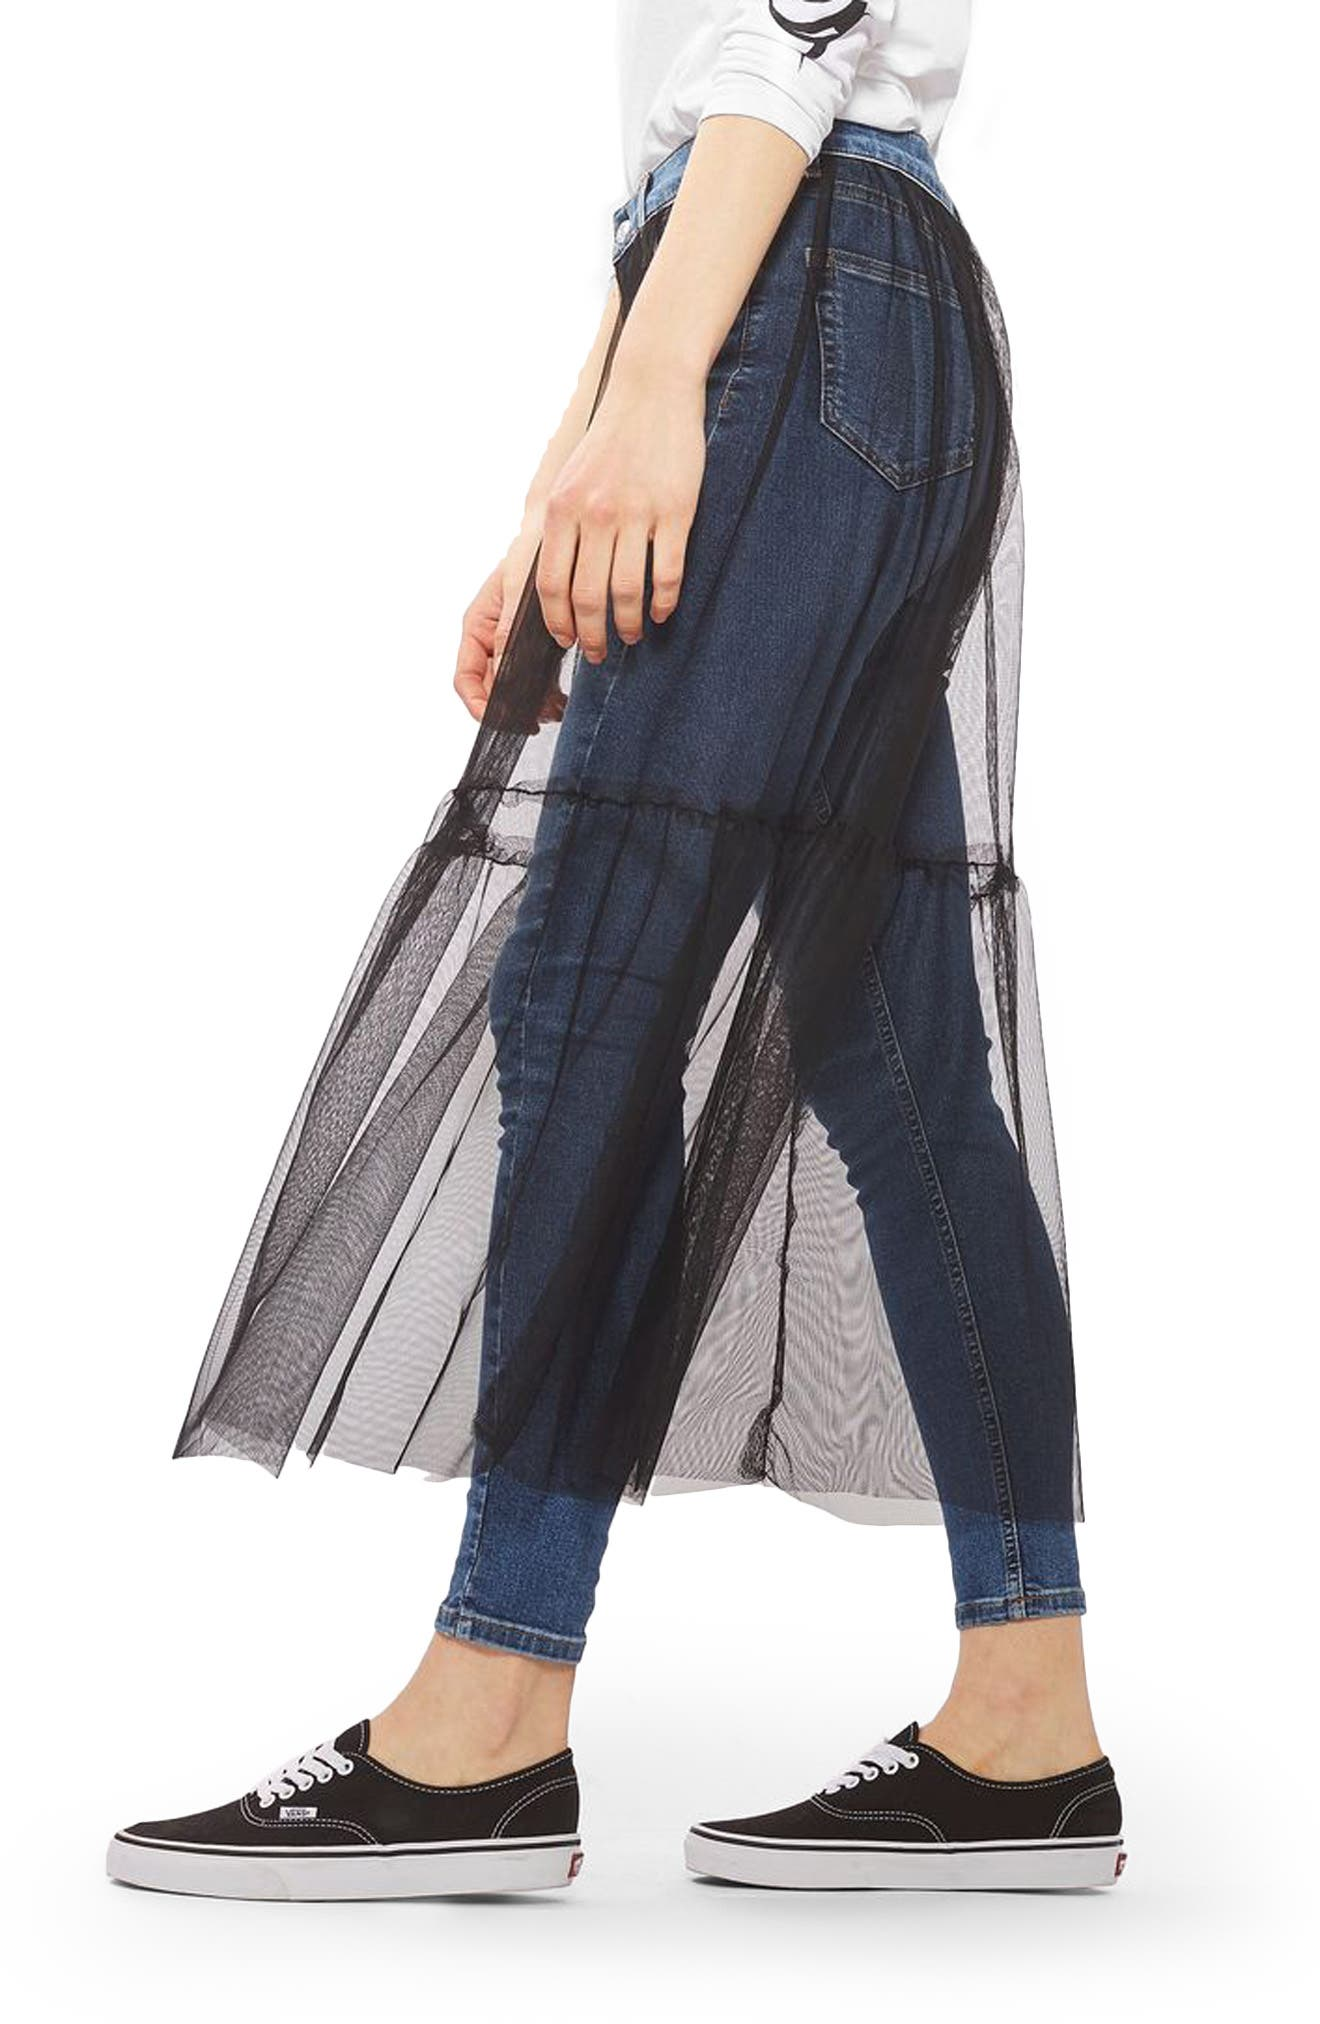 TOPSHOP, Jamie Tulle Overlay Skinny Jeans, Alternate thumbnail 3, color, 400